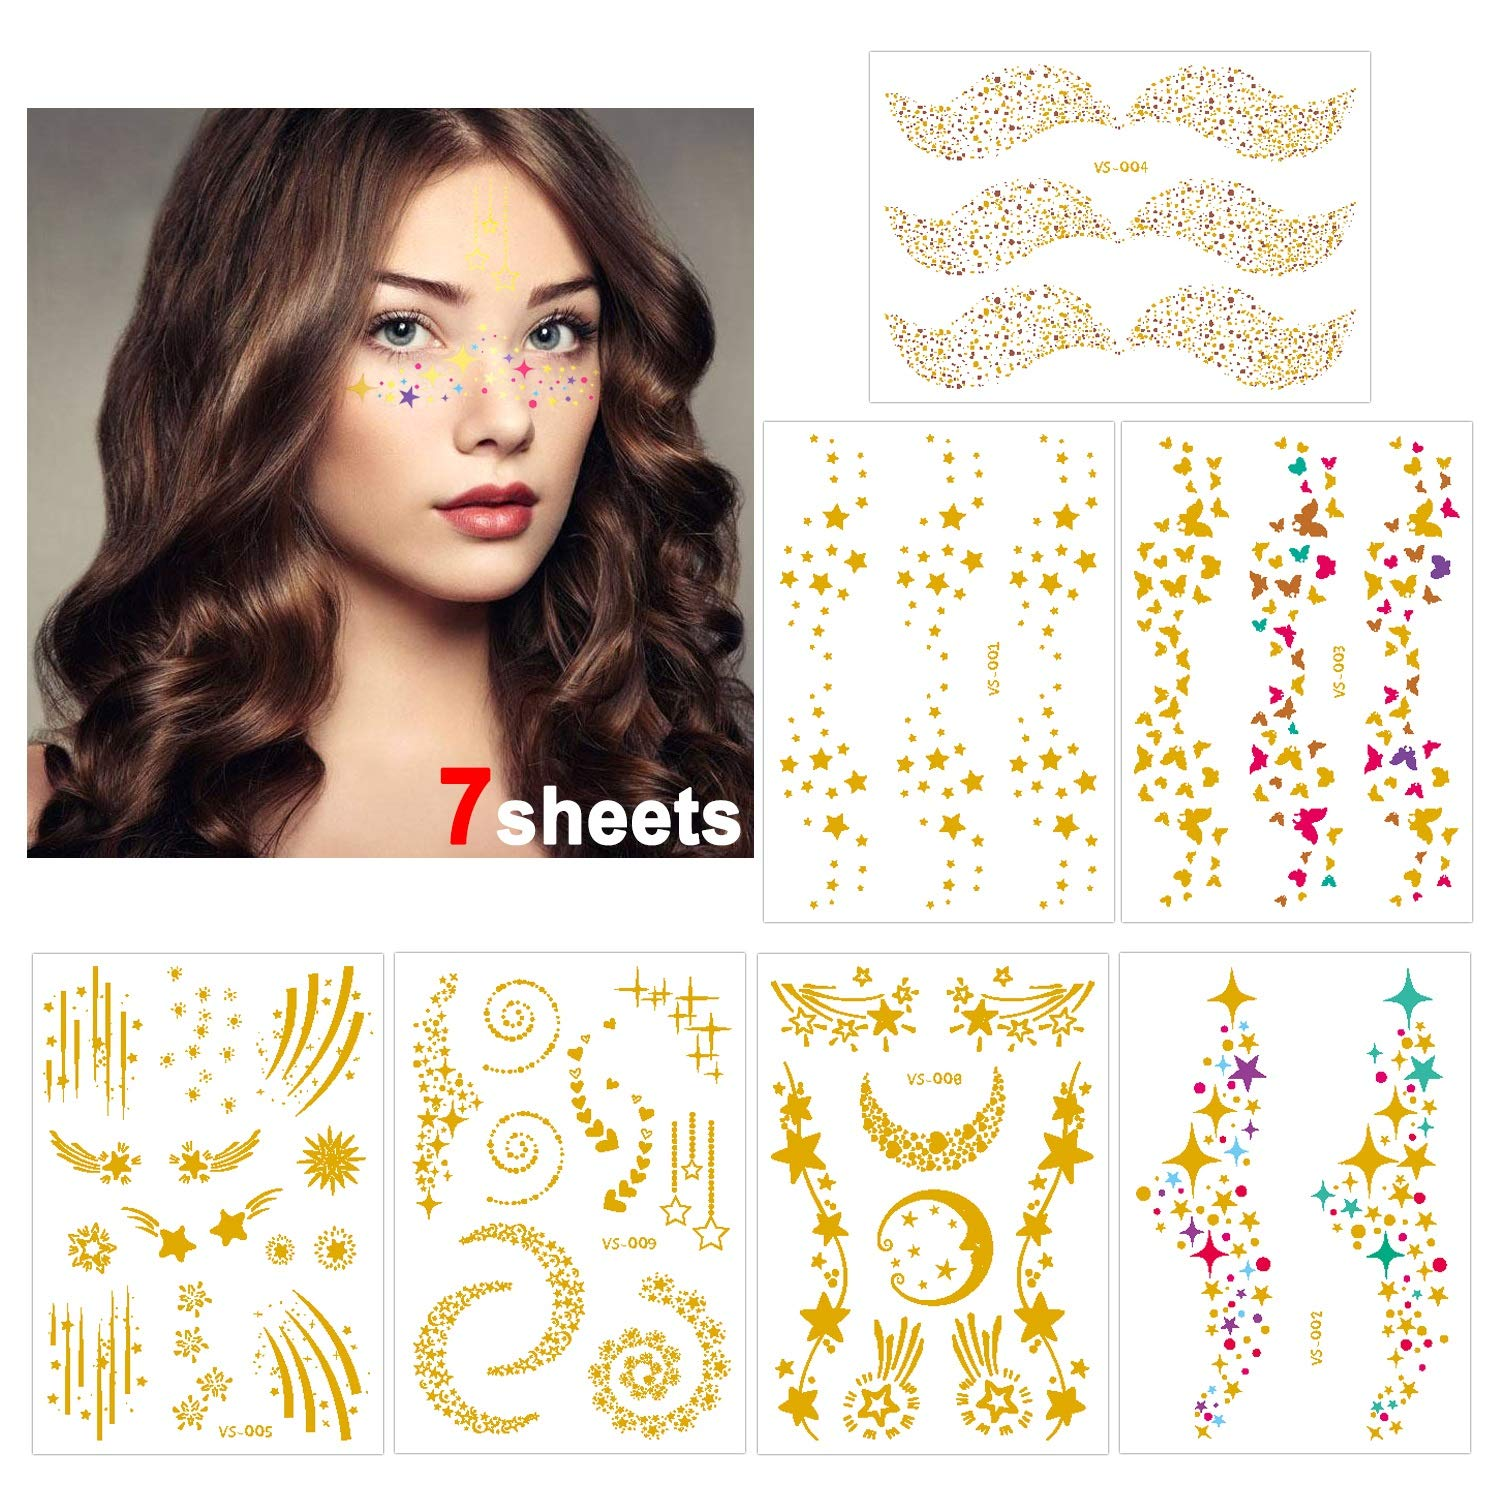 Konsait 7sheets Face Tattoo Sticker Metallic Temporary Transfer Tattoo Waterproof Face Jewel s for Women Girls Make Up Dancer Costume Parties, Shimmer Glitter Designs Gold Tattoos